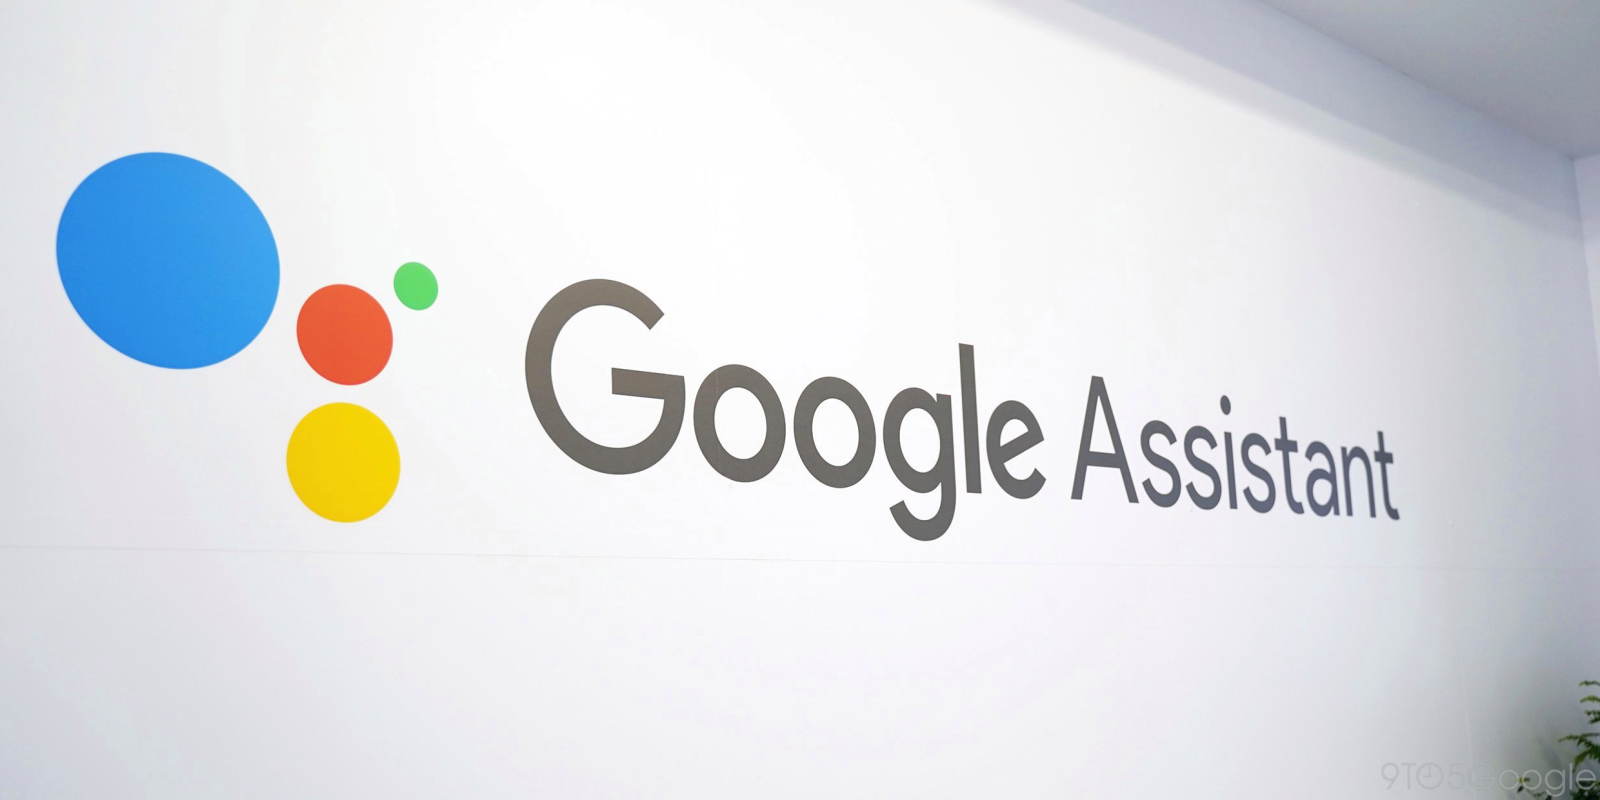 Google Assistant's most useful features show up on more smart home gadgets